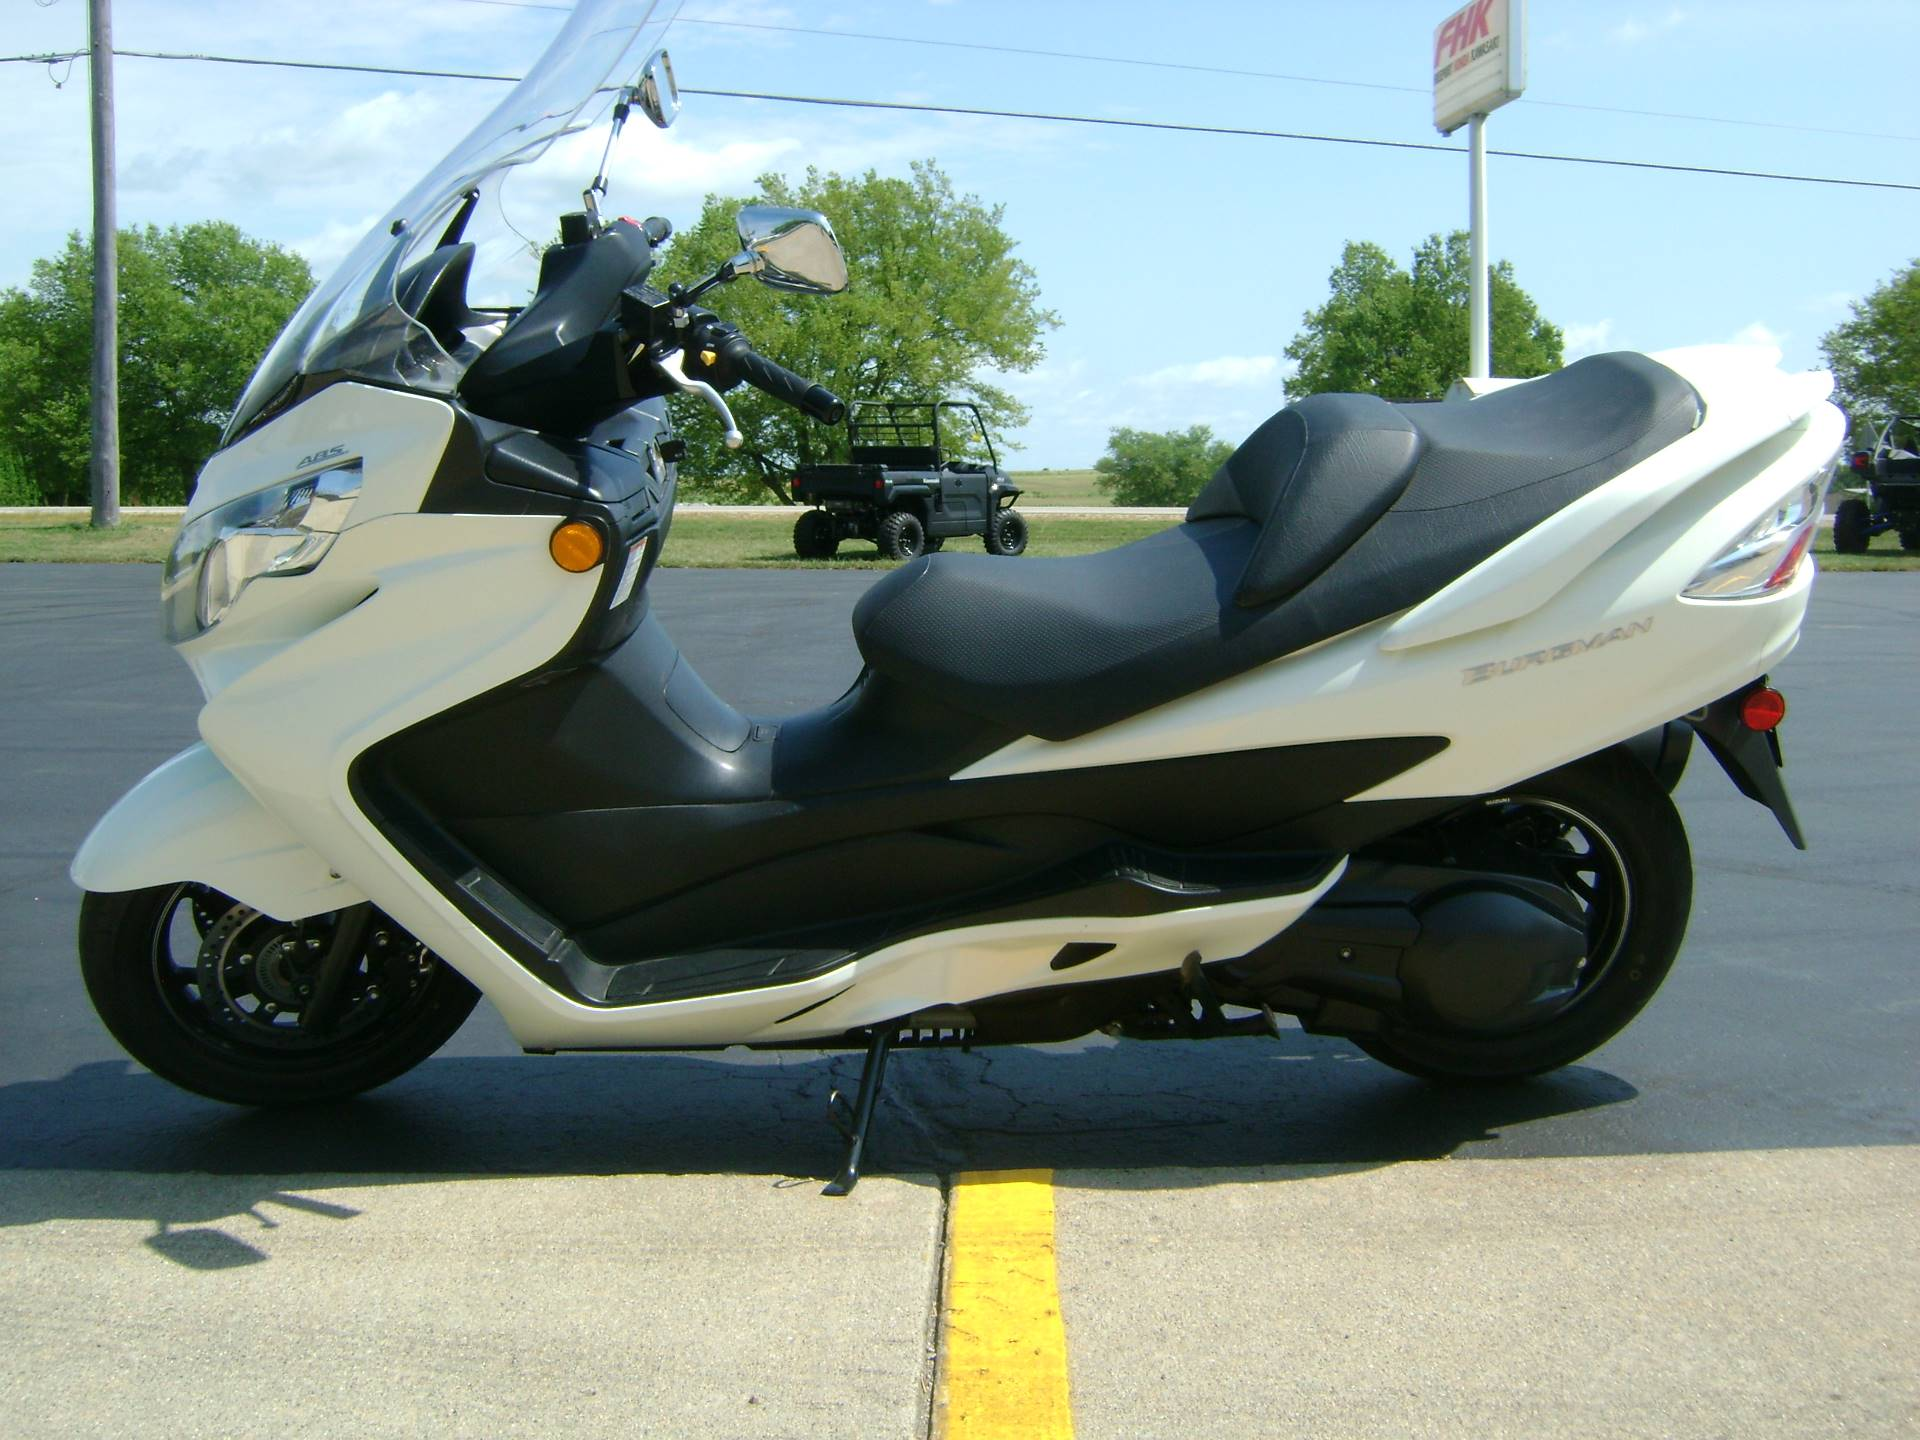 2012 Suzuki BURGMAN 400 ABS in Freeport, Illinois - Photo 4